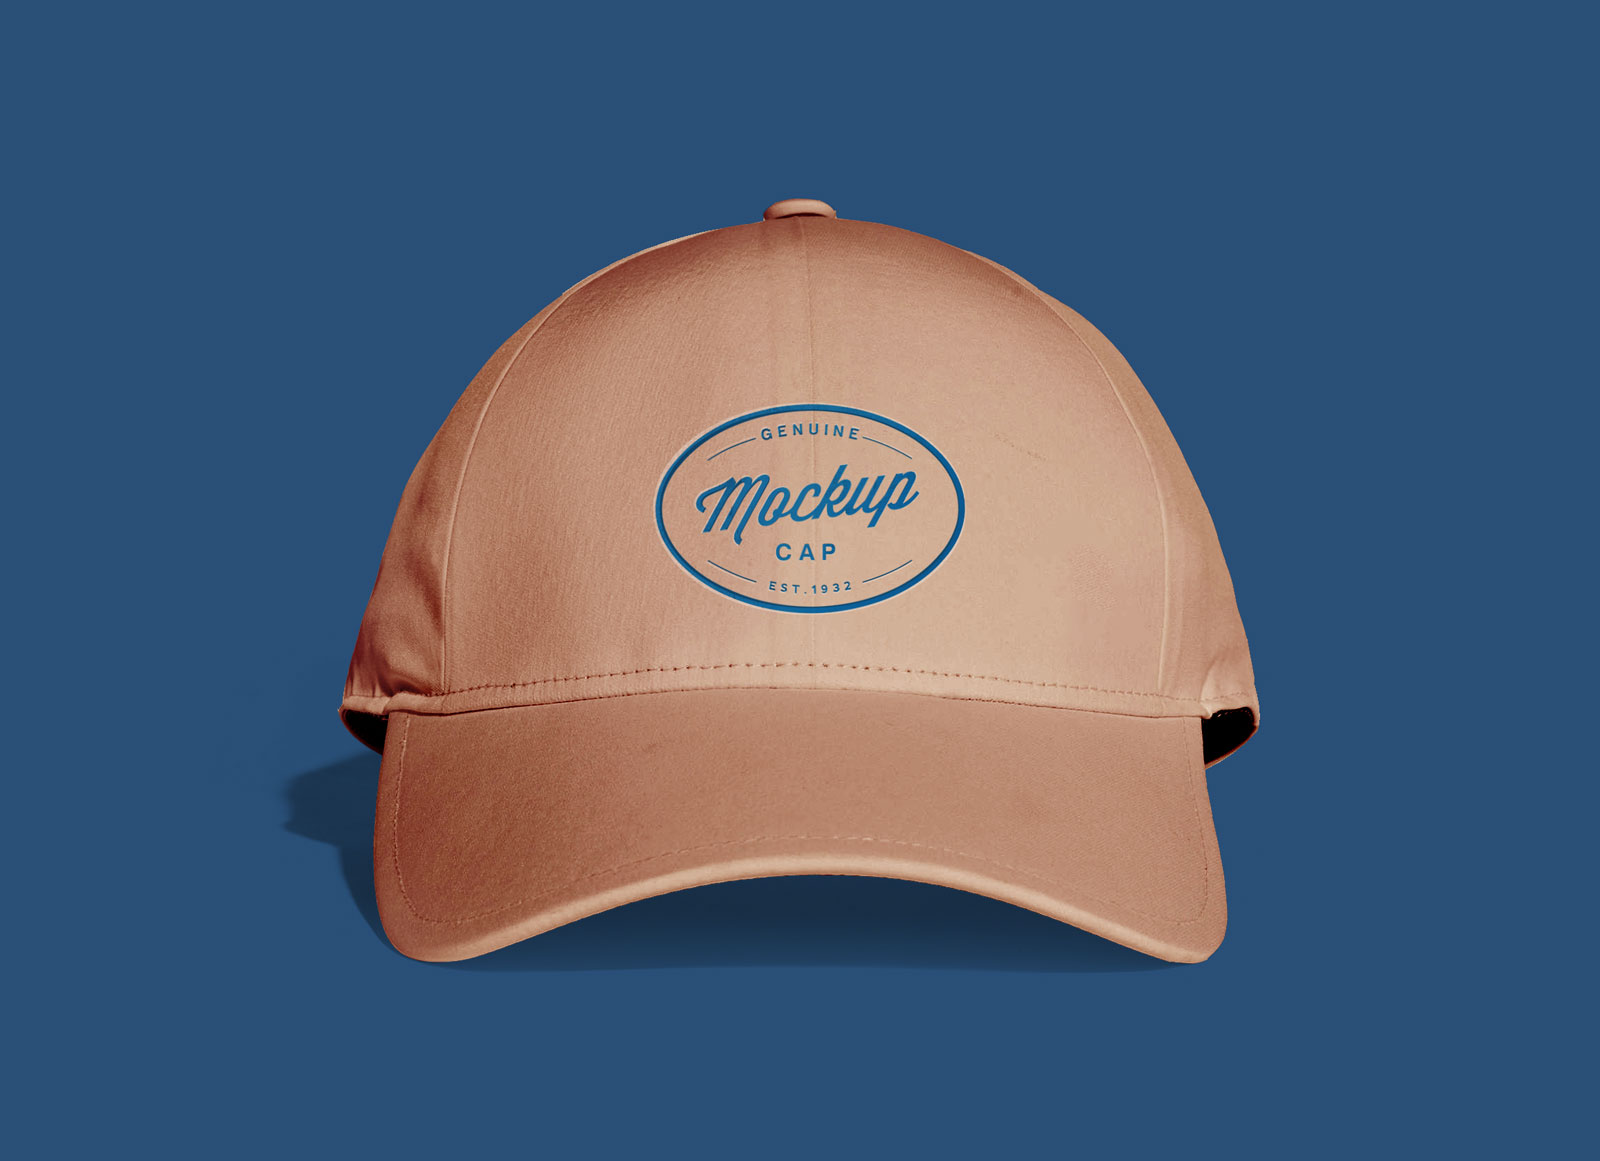 Free-High-Quality-Baseball-Cap-Mockup-PSD